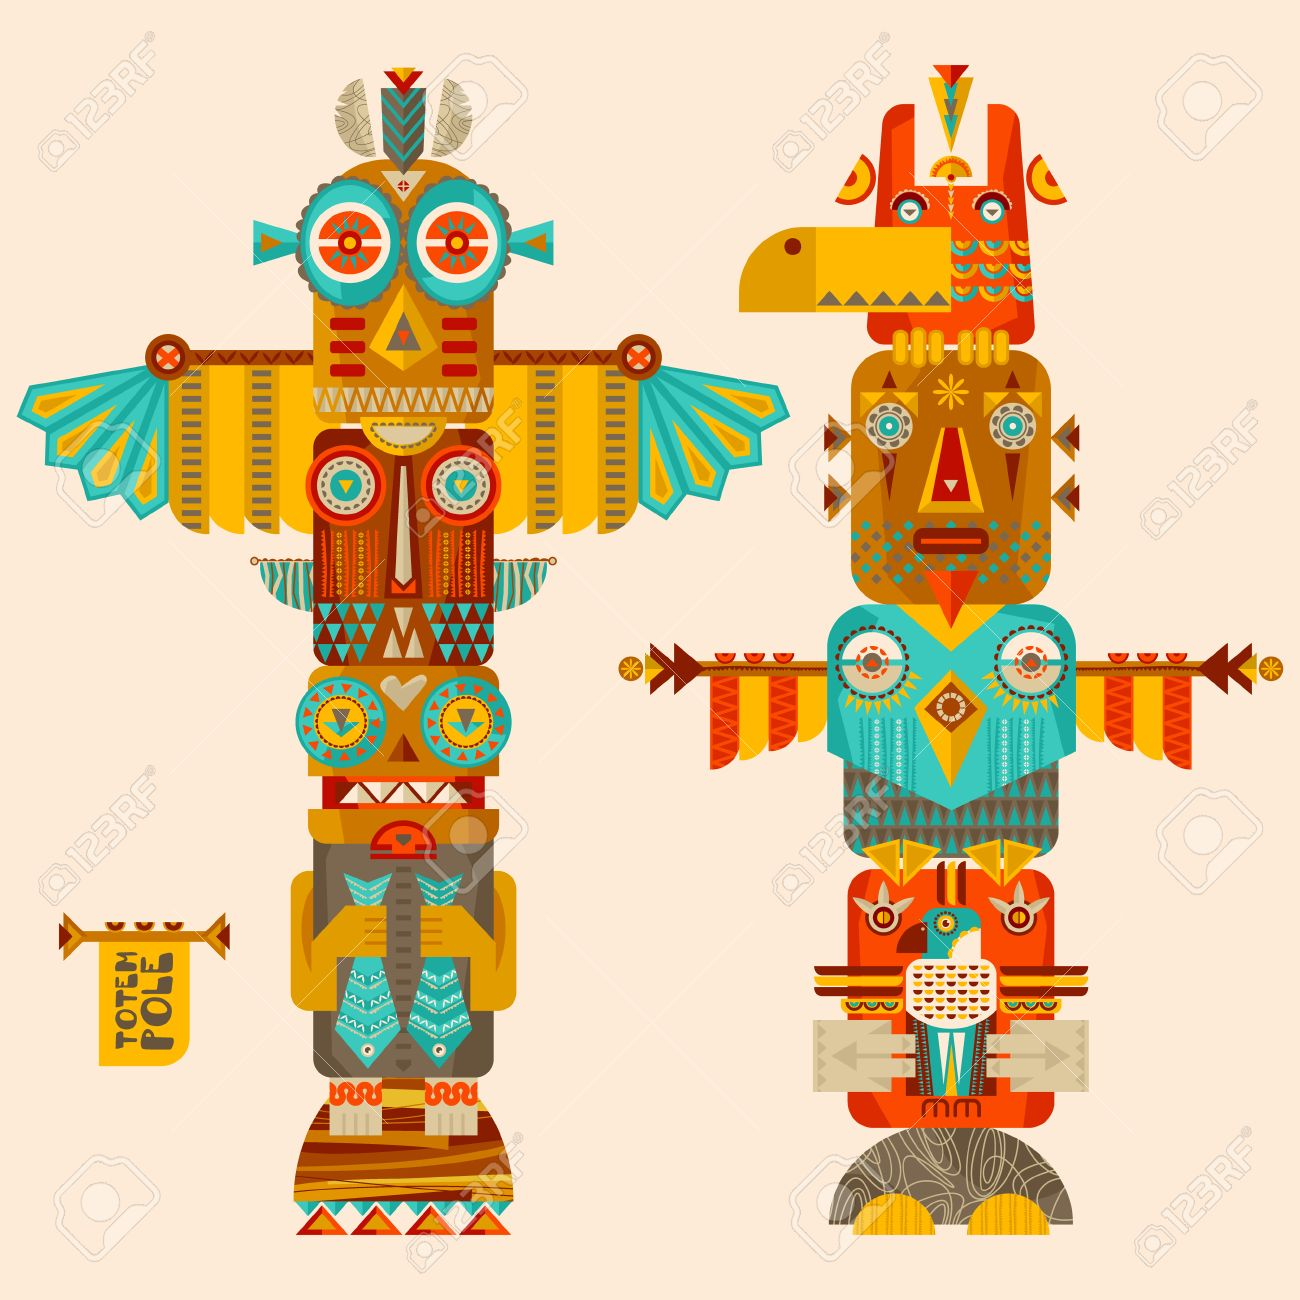 multi colored totem poles illustration royalty free cliparts